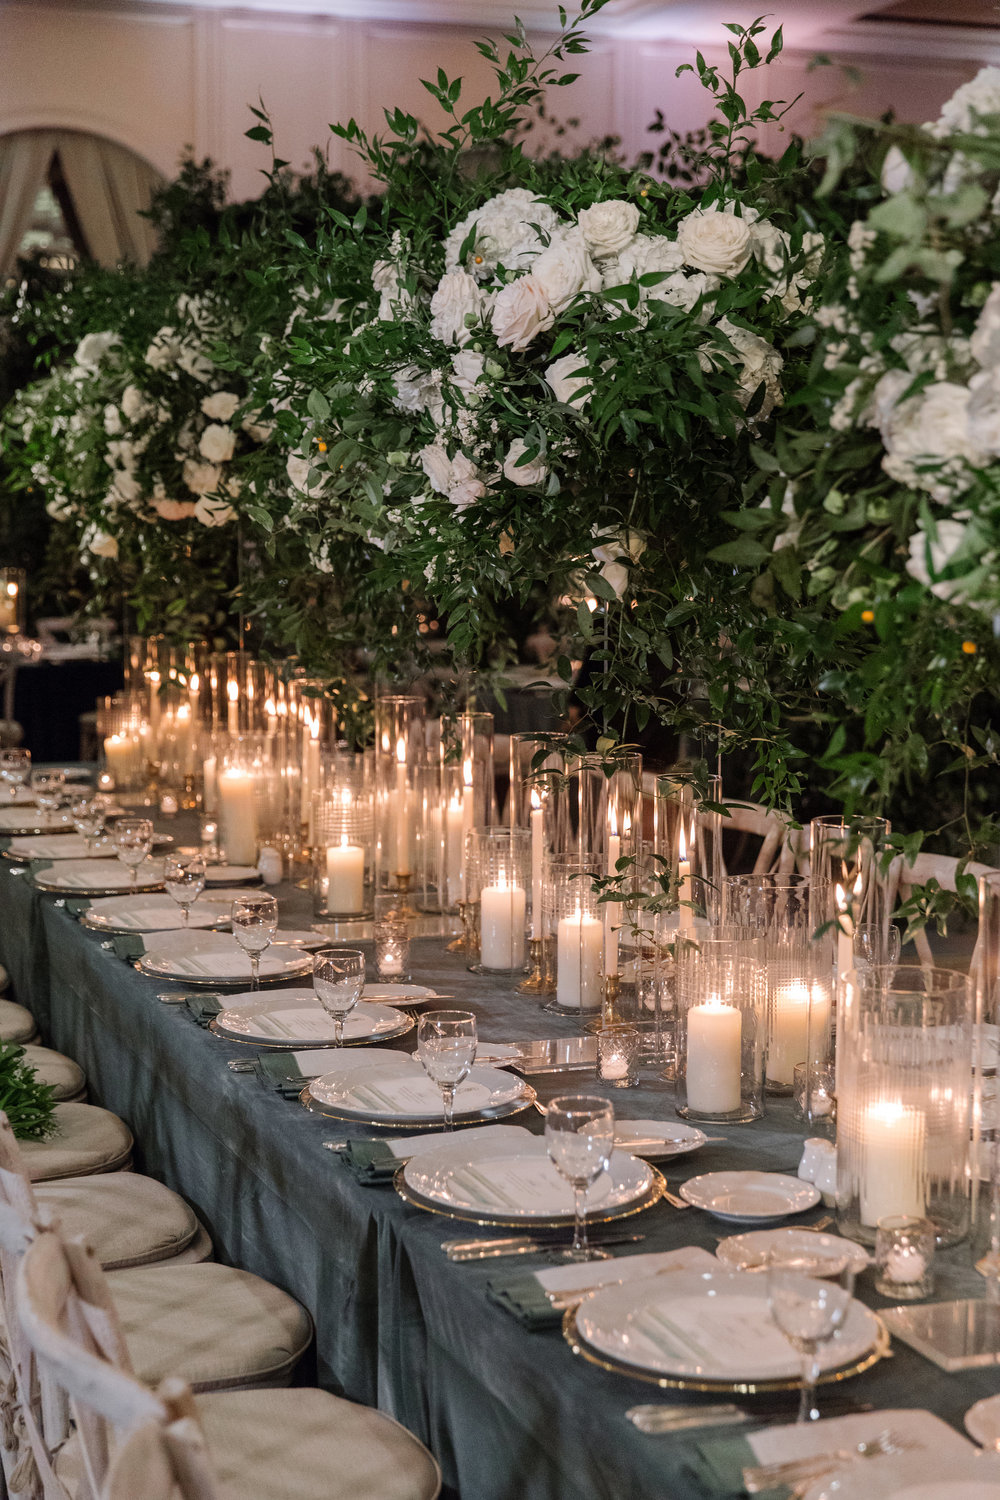 Tabletop Details - Dallas, Tx - Spring Wedding - Julian Leaver Events